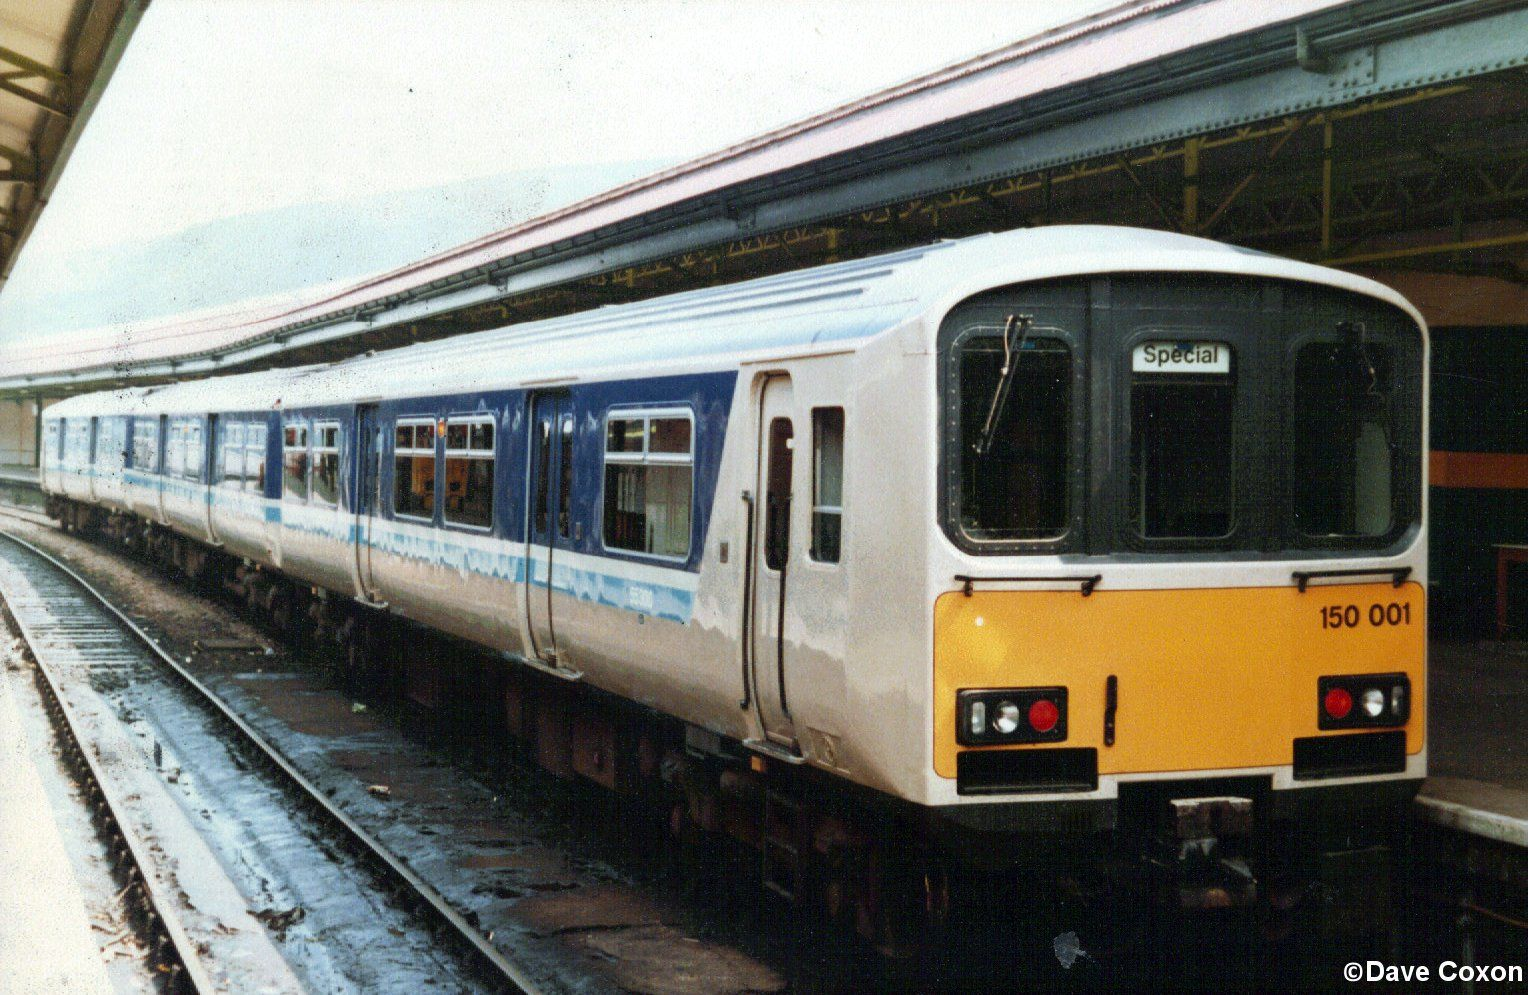 Image showing 150001 in Cardiff Queen Street Station